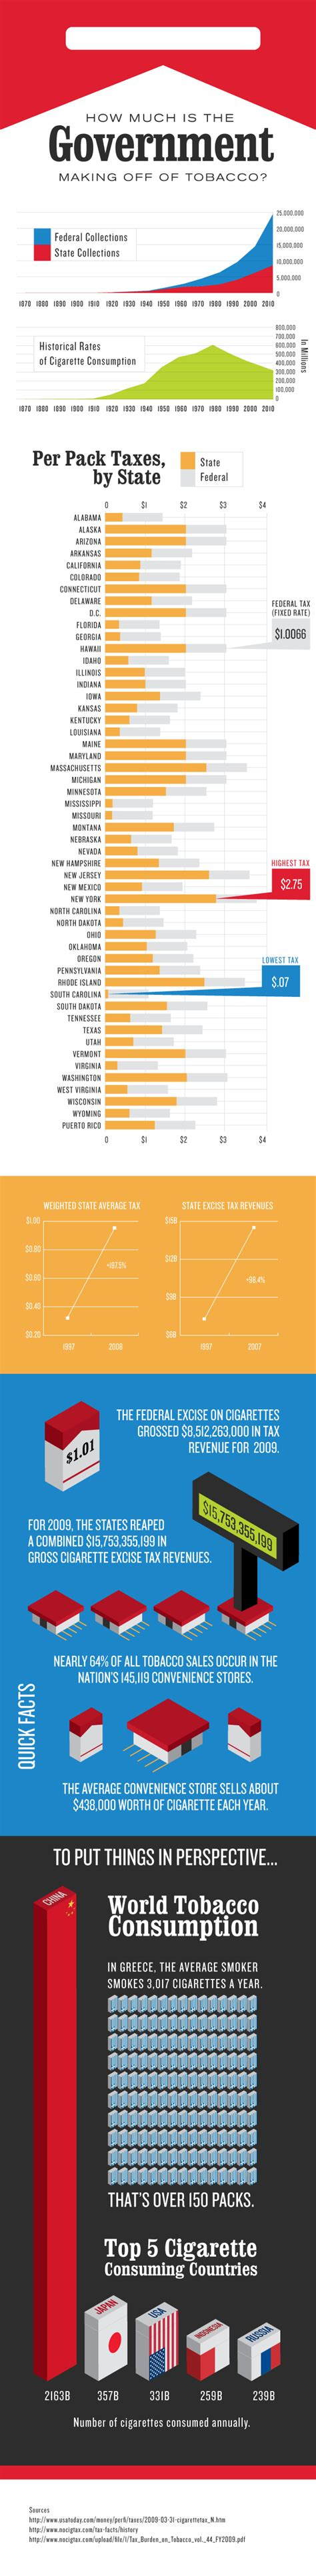 supplemental k 1 turbotax how much is the government of tobacco the